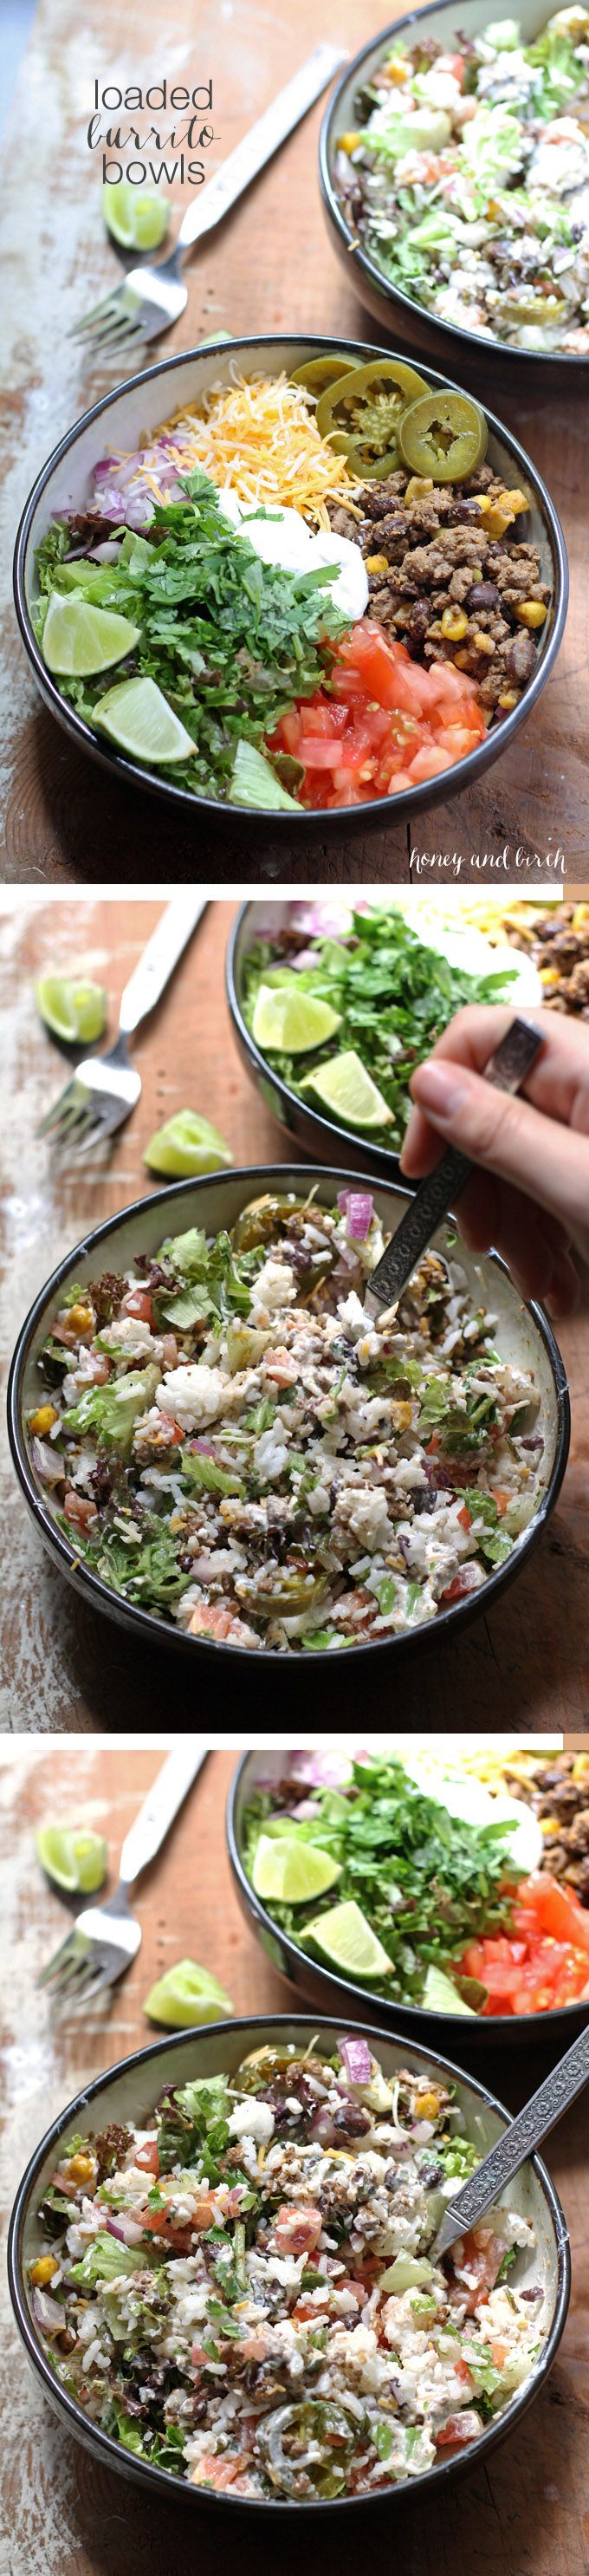 mens nike court majestic casual shoes If you have picky eaters or need to eat dinner quick  this recipe for loaded burrito bowls will hit the spot    www honeyandbirch com